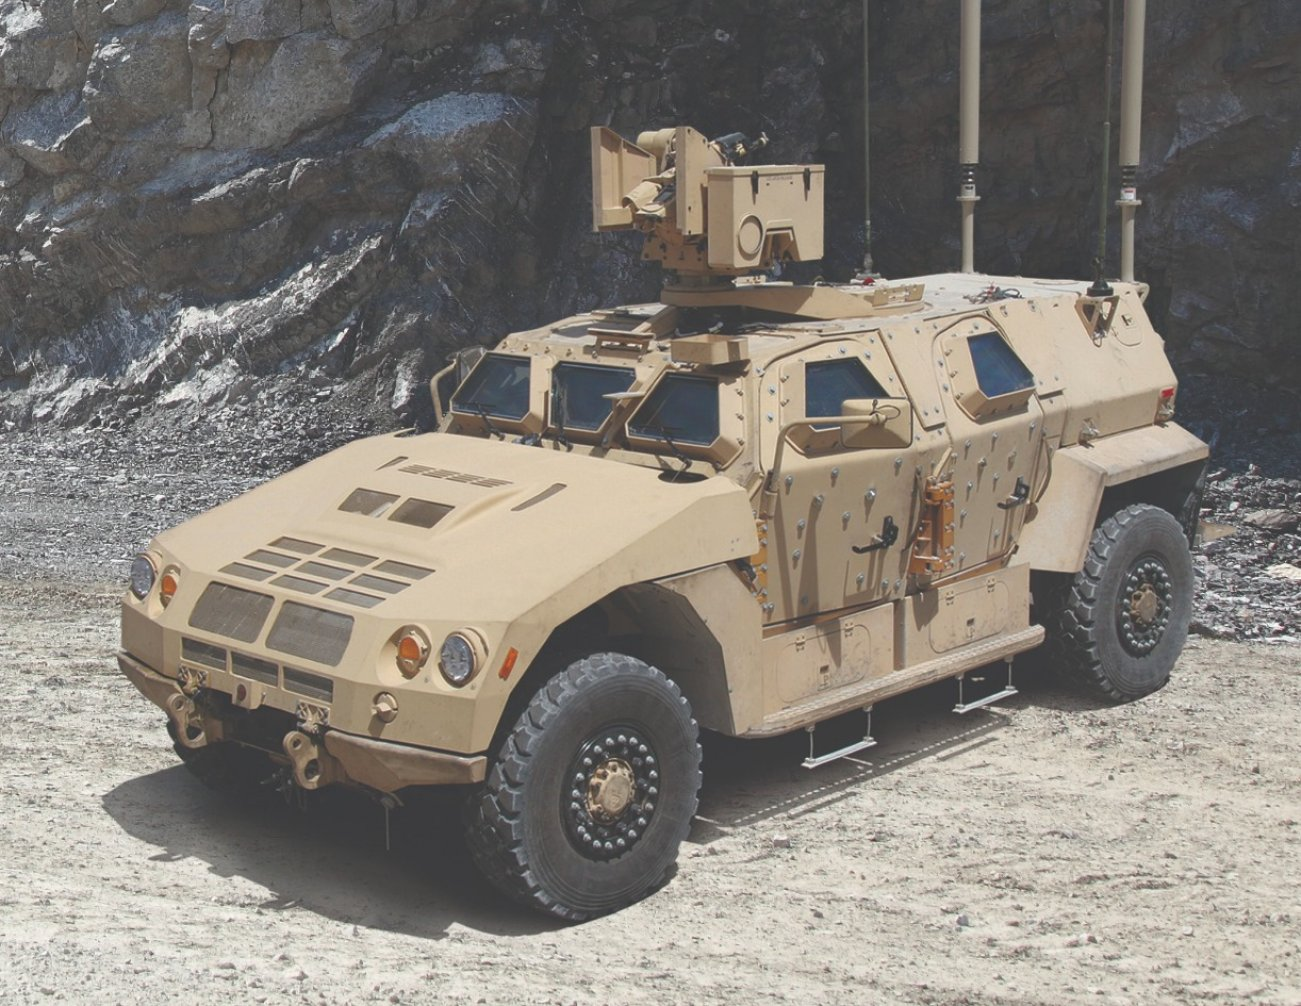 Why the U.S. Marine Corps Wants to Turn Its Trucks Into Tank-Destroyers